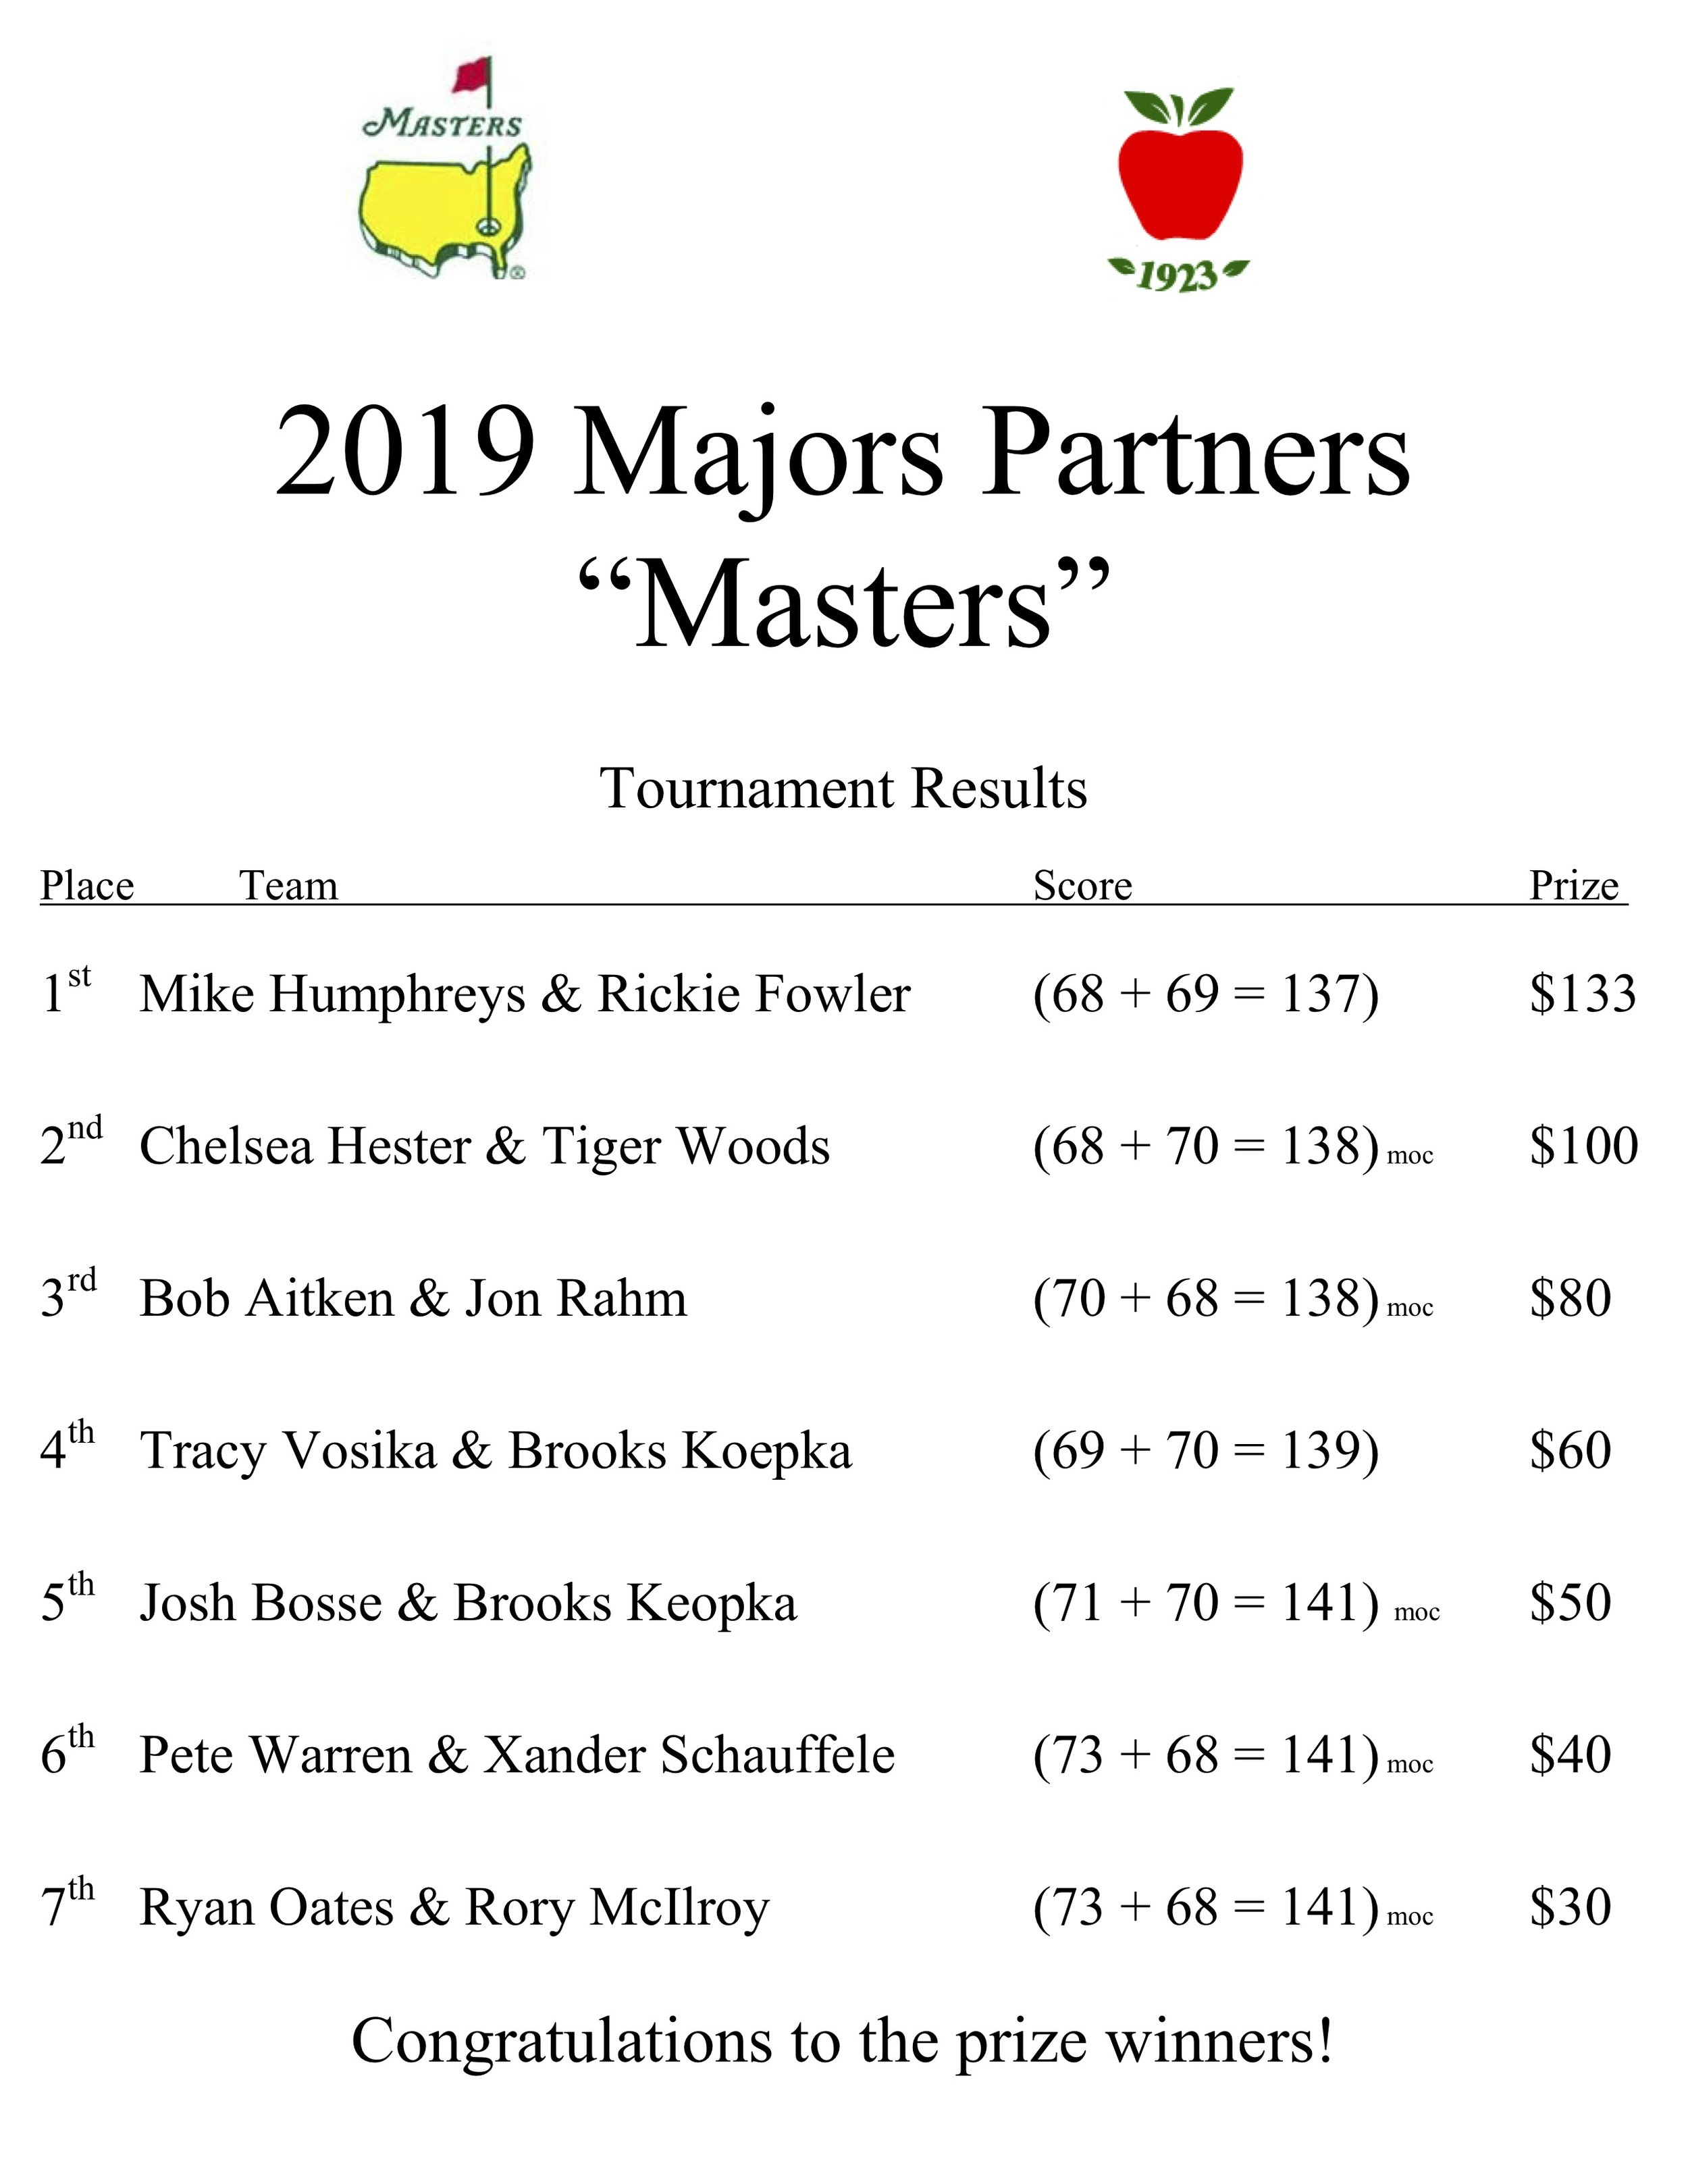 2019 masters partners results.jpg